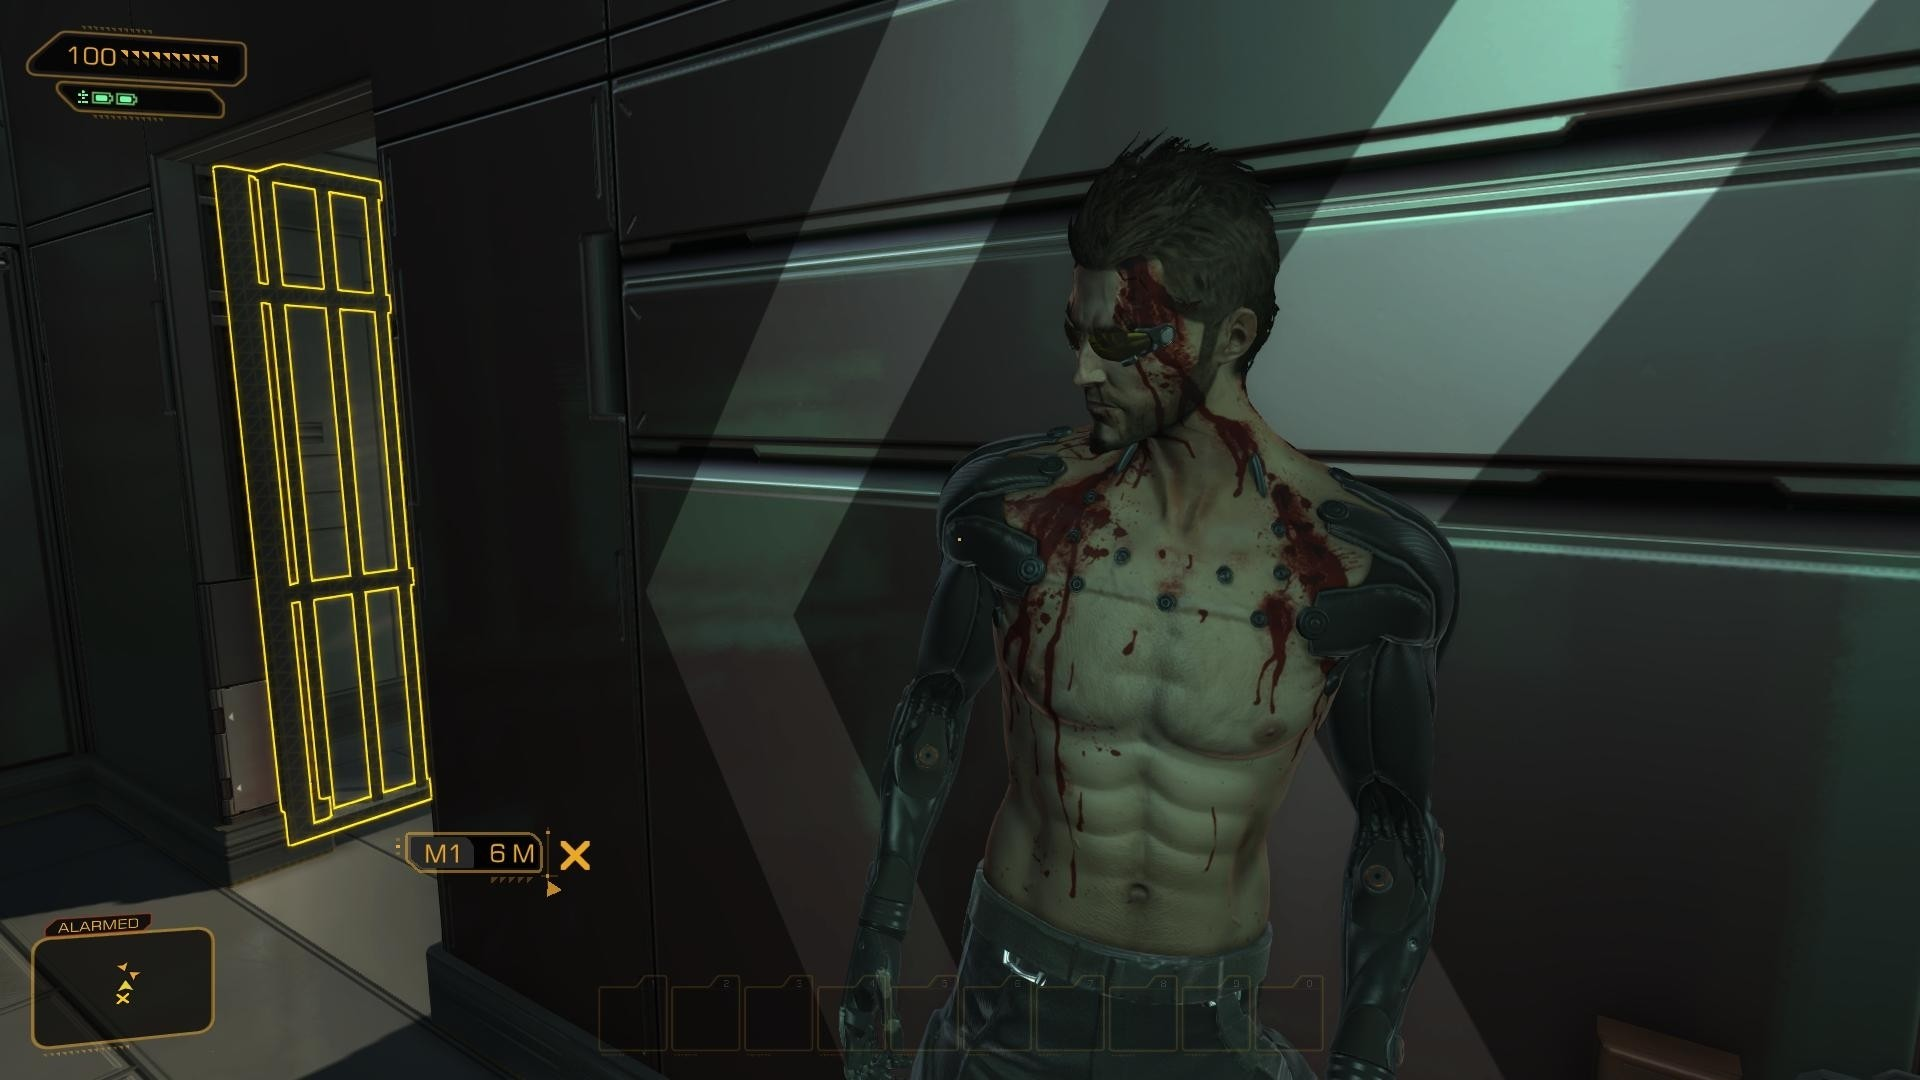 1920x1080 Deus Ex images DEHR - The Missing Link01 HD wallpaper and background photos